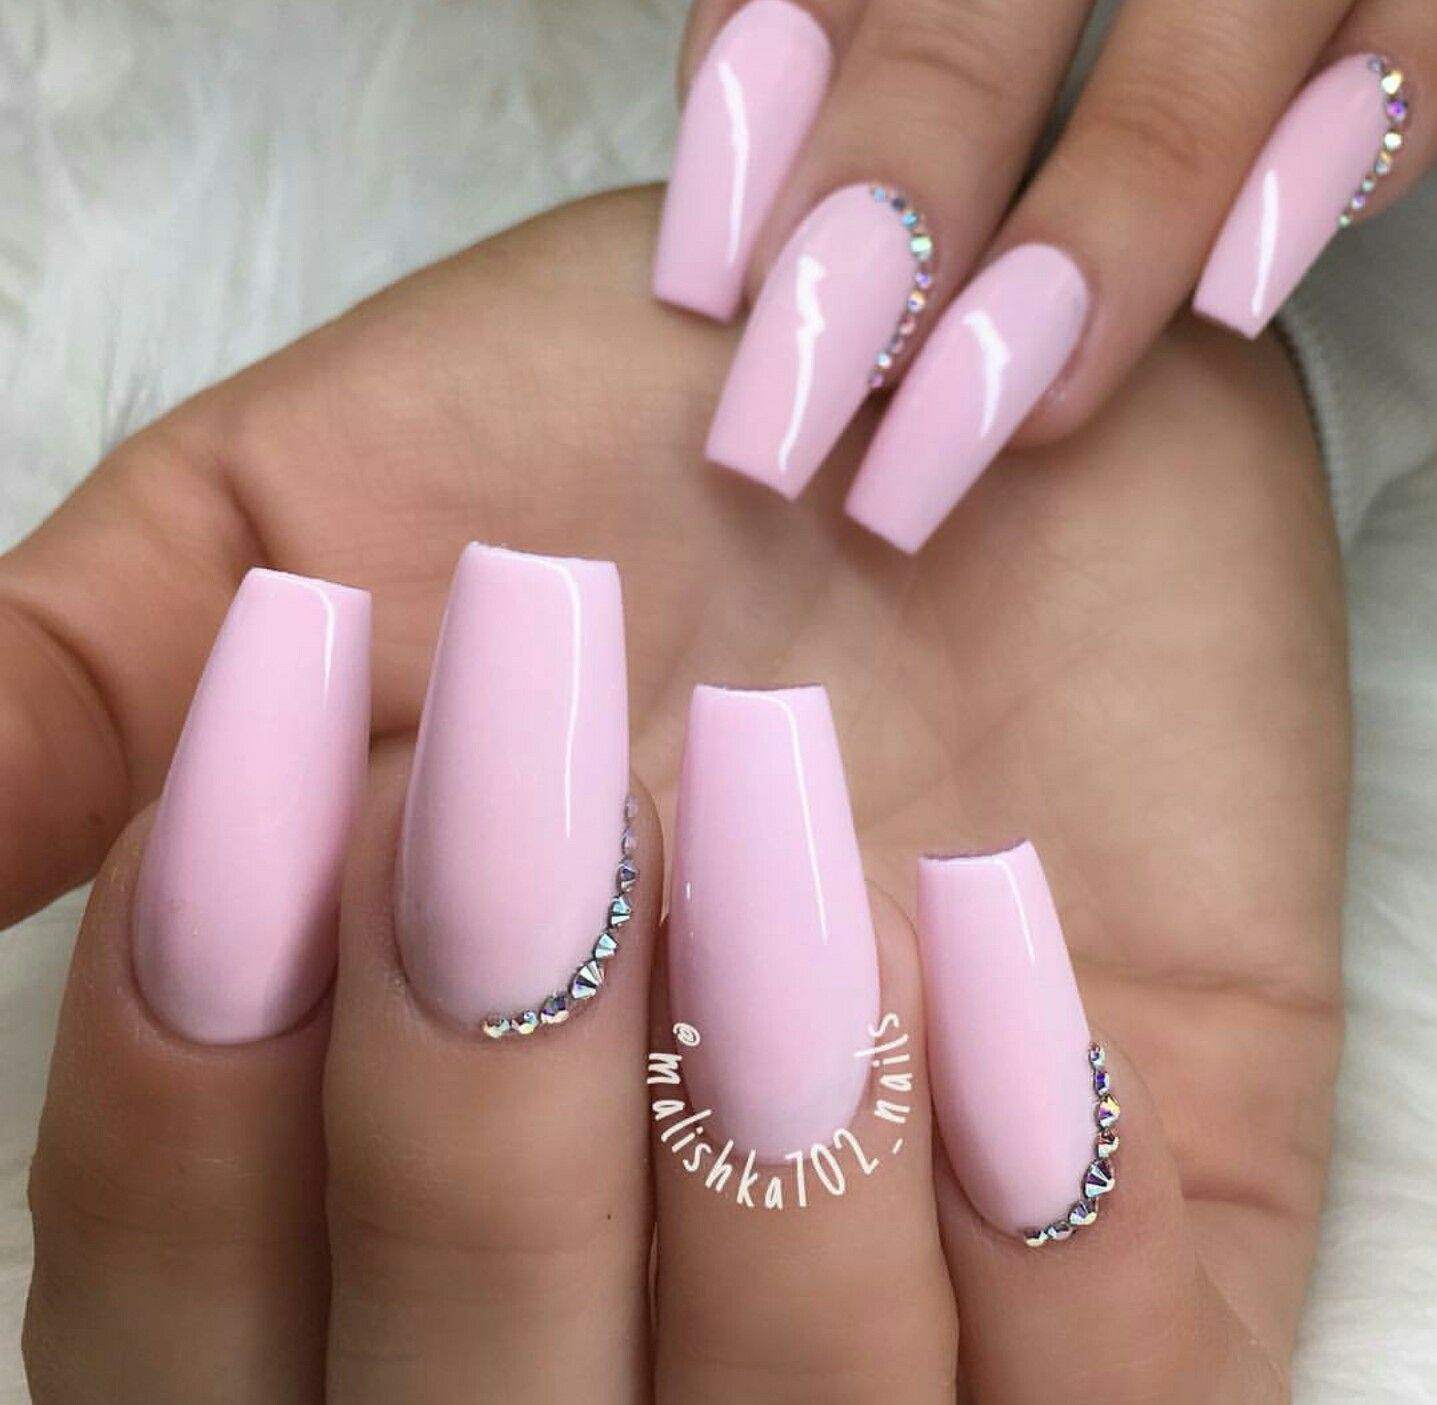 Tapered Square Nails Long Nails Baby Pink Nails Acrylic Nails Pink Acrylic Nails Baby Pink Nails Tapered Square Nails